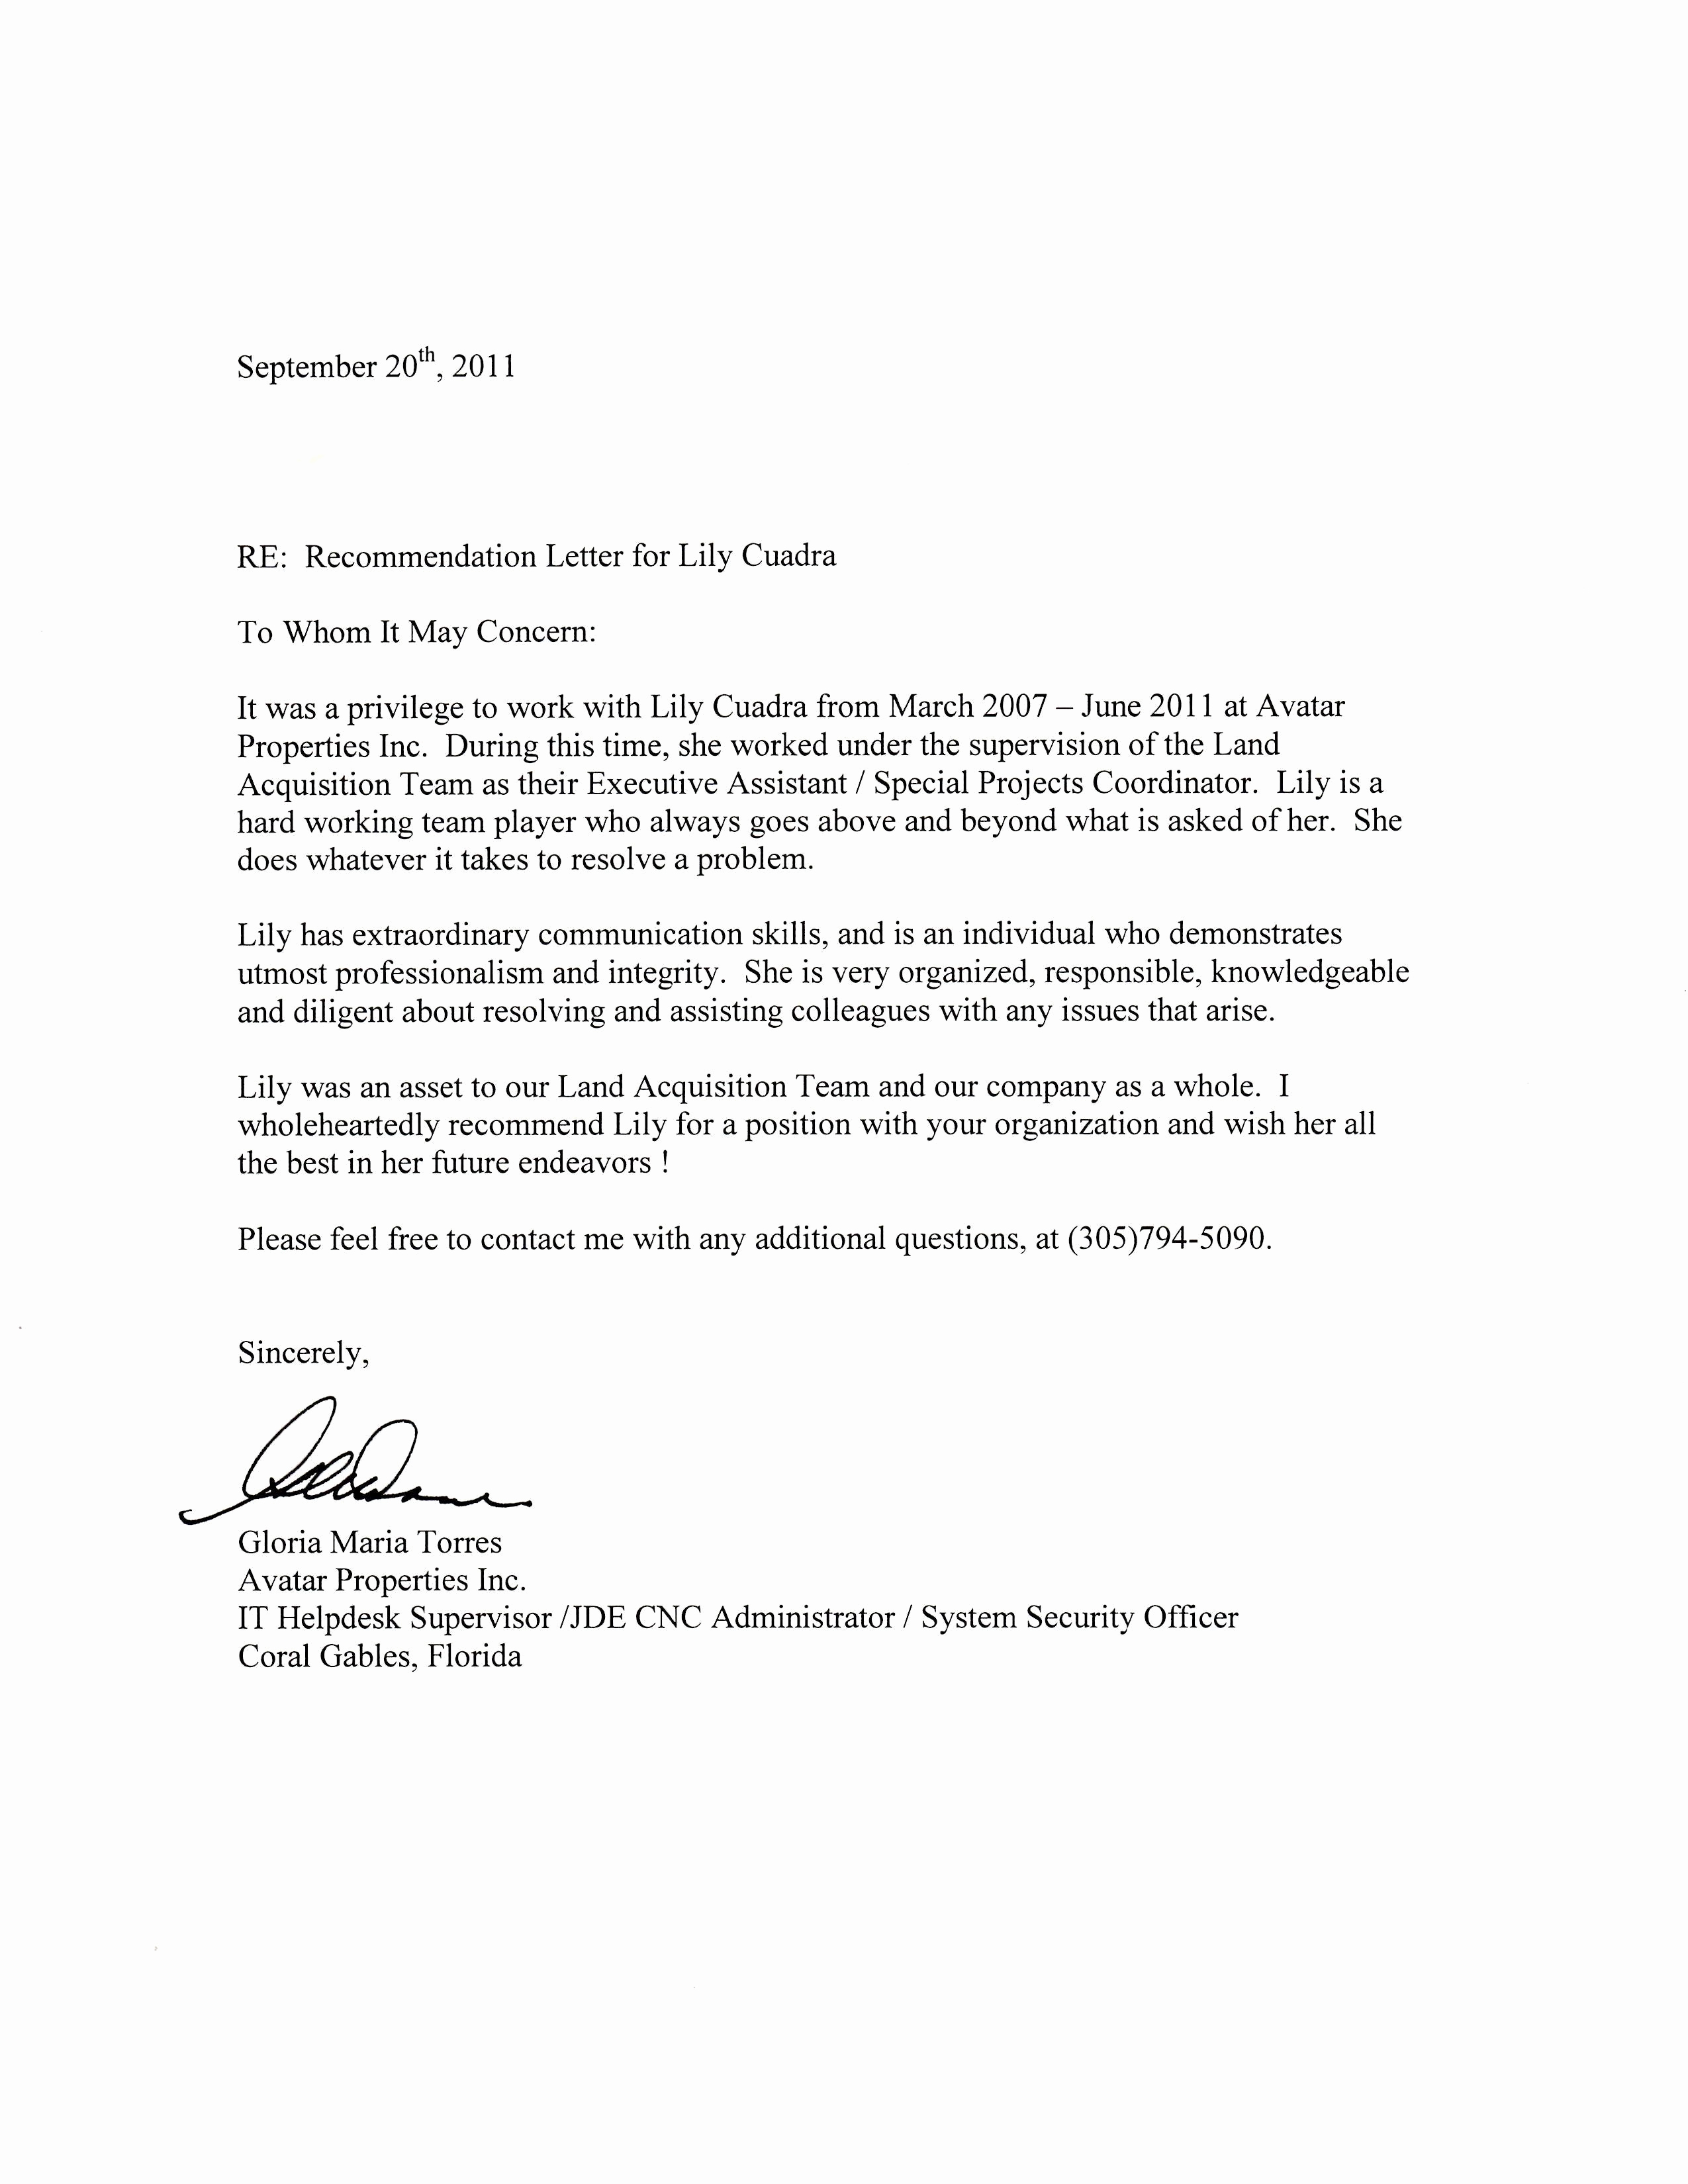 Letter Of Reference Example Fresh Simple Guide Professional Reference Letter with Samples